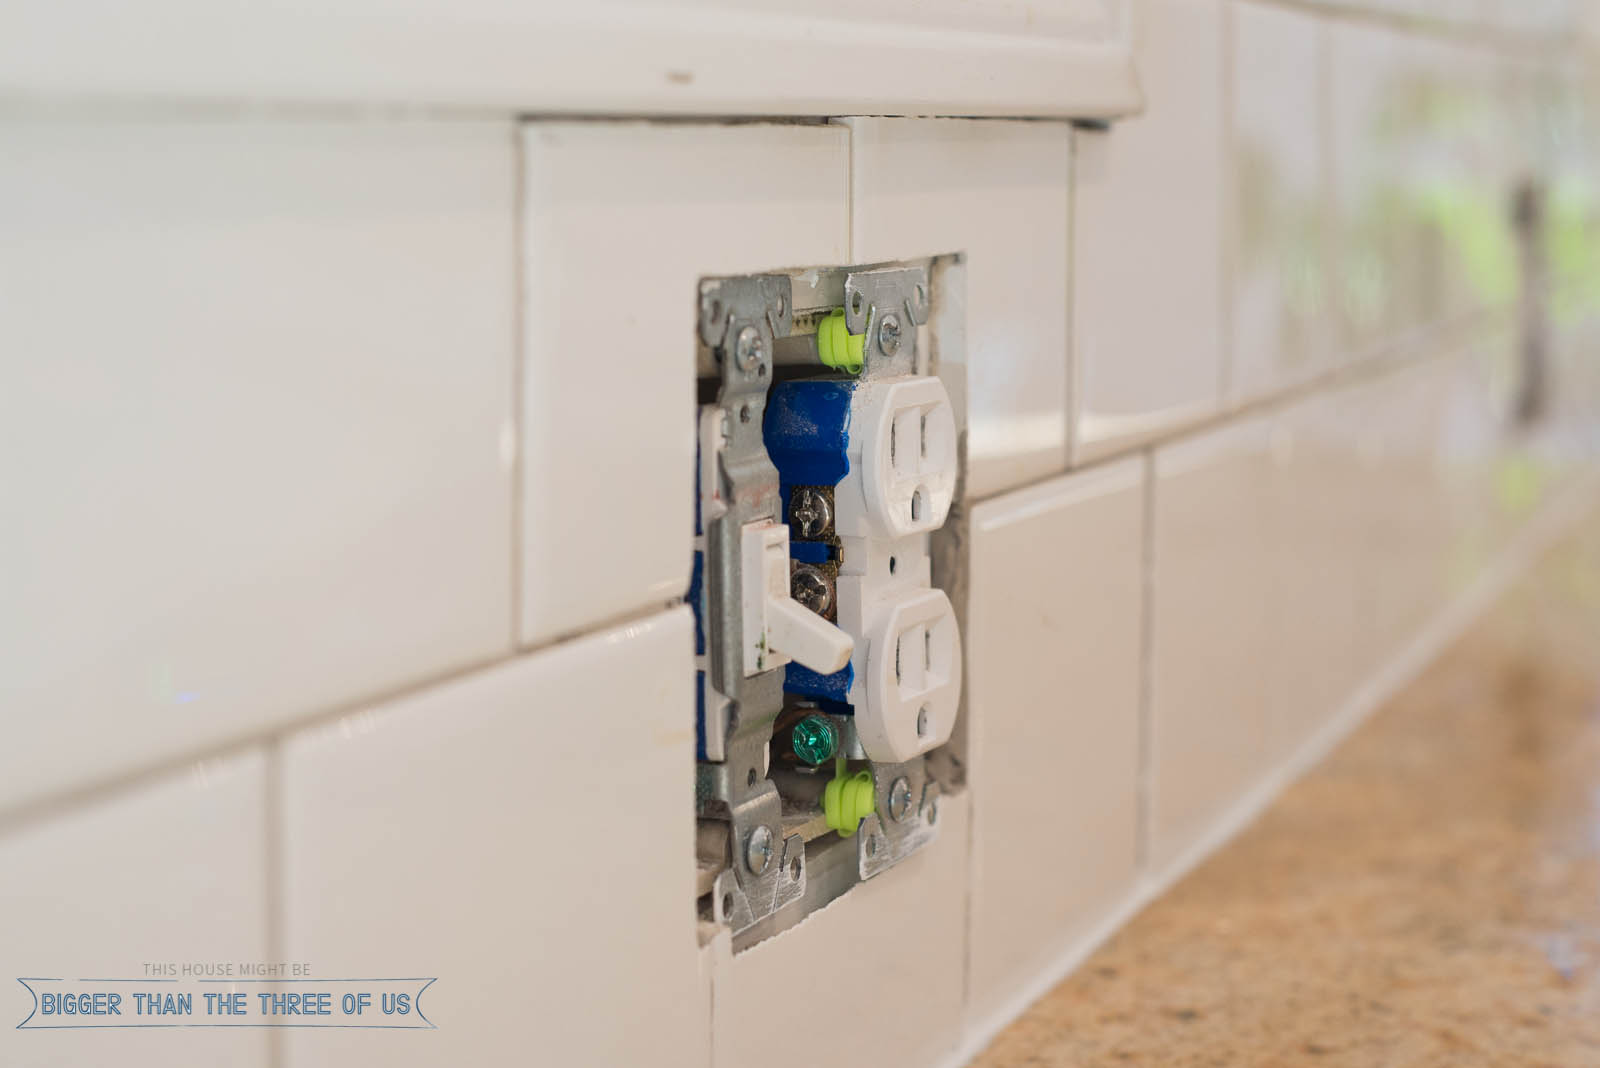 Electrical extenders for tiled wall.